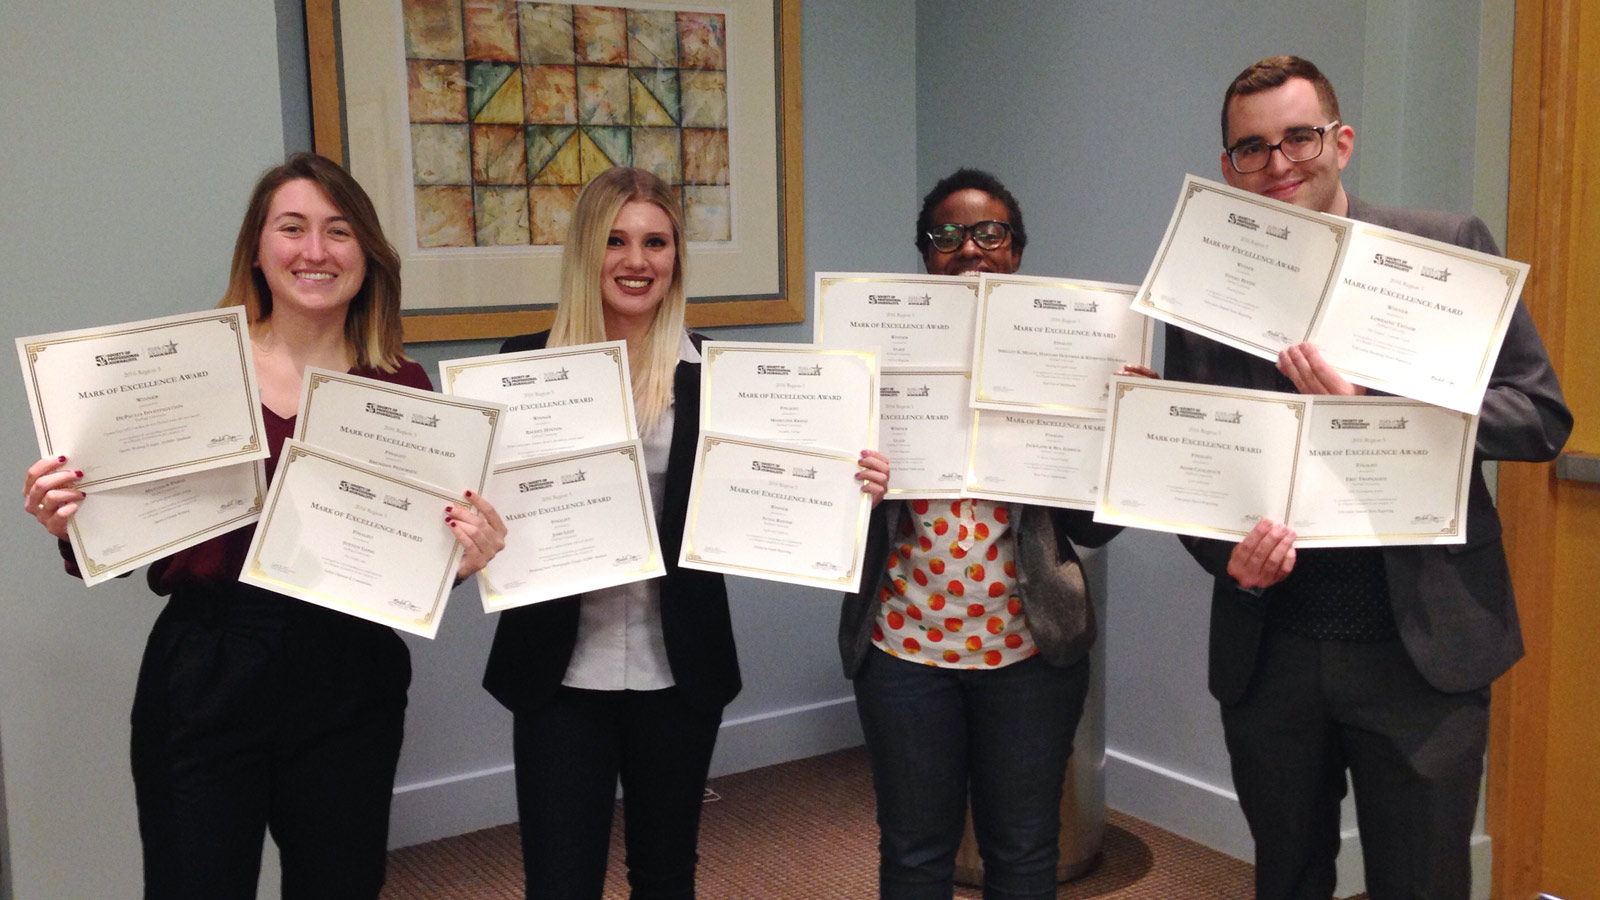 SPJ/ONA chapter posing with awards